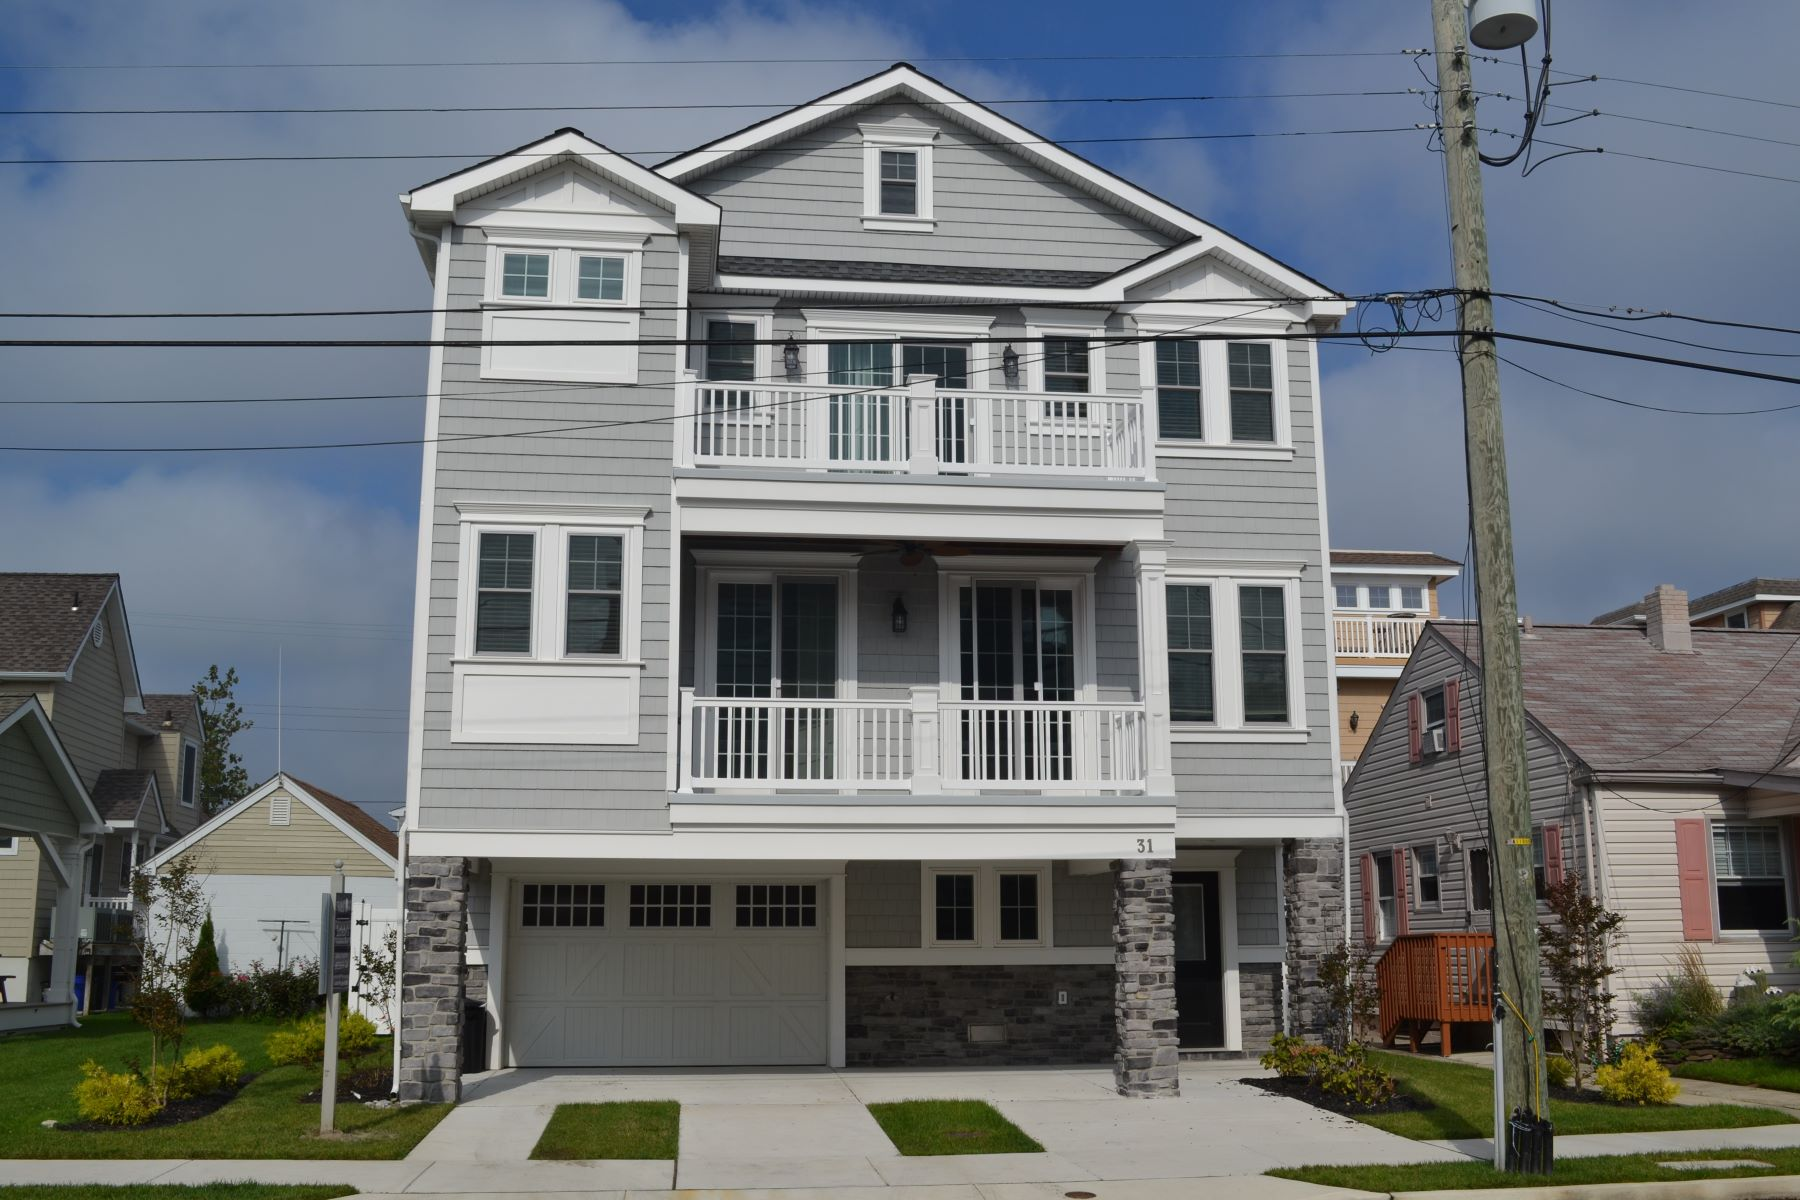 Single Family Home for Sale at 31 N 33rd Ave Longport, New Jersey 08403 United States